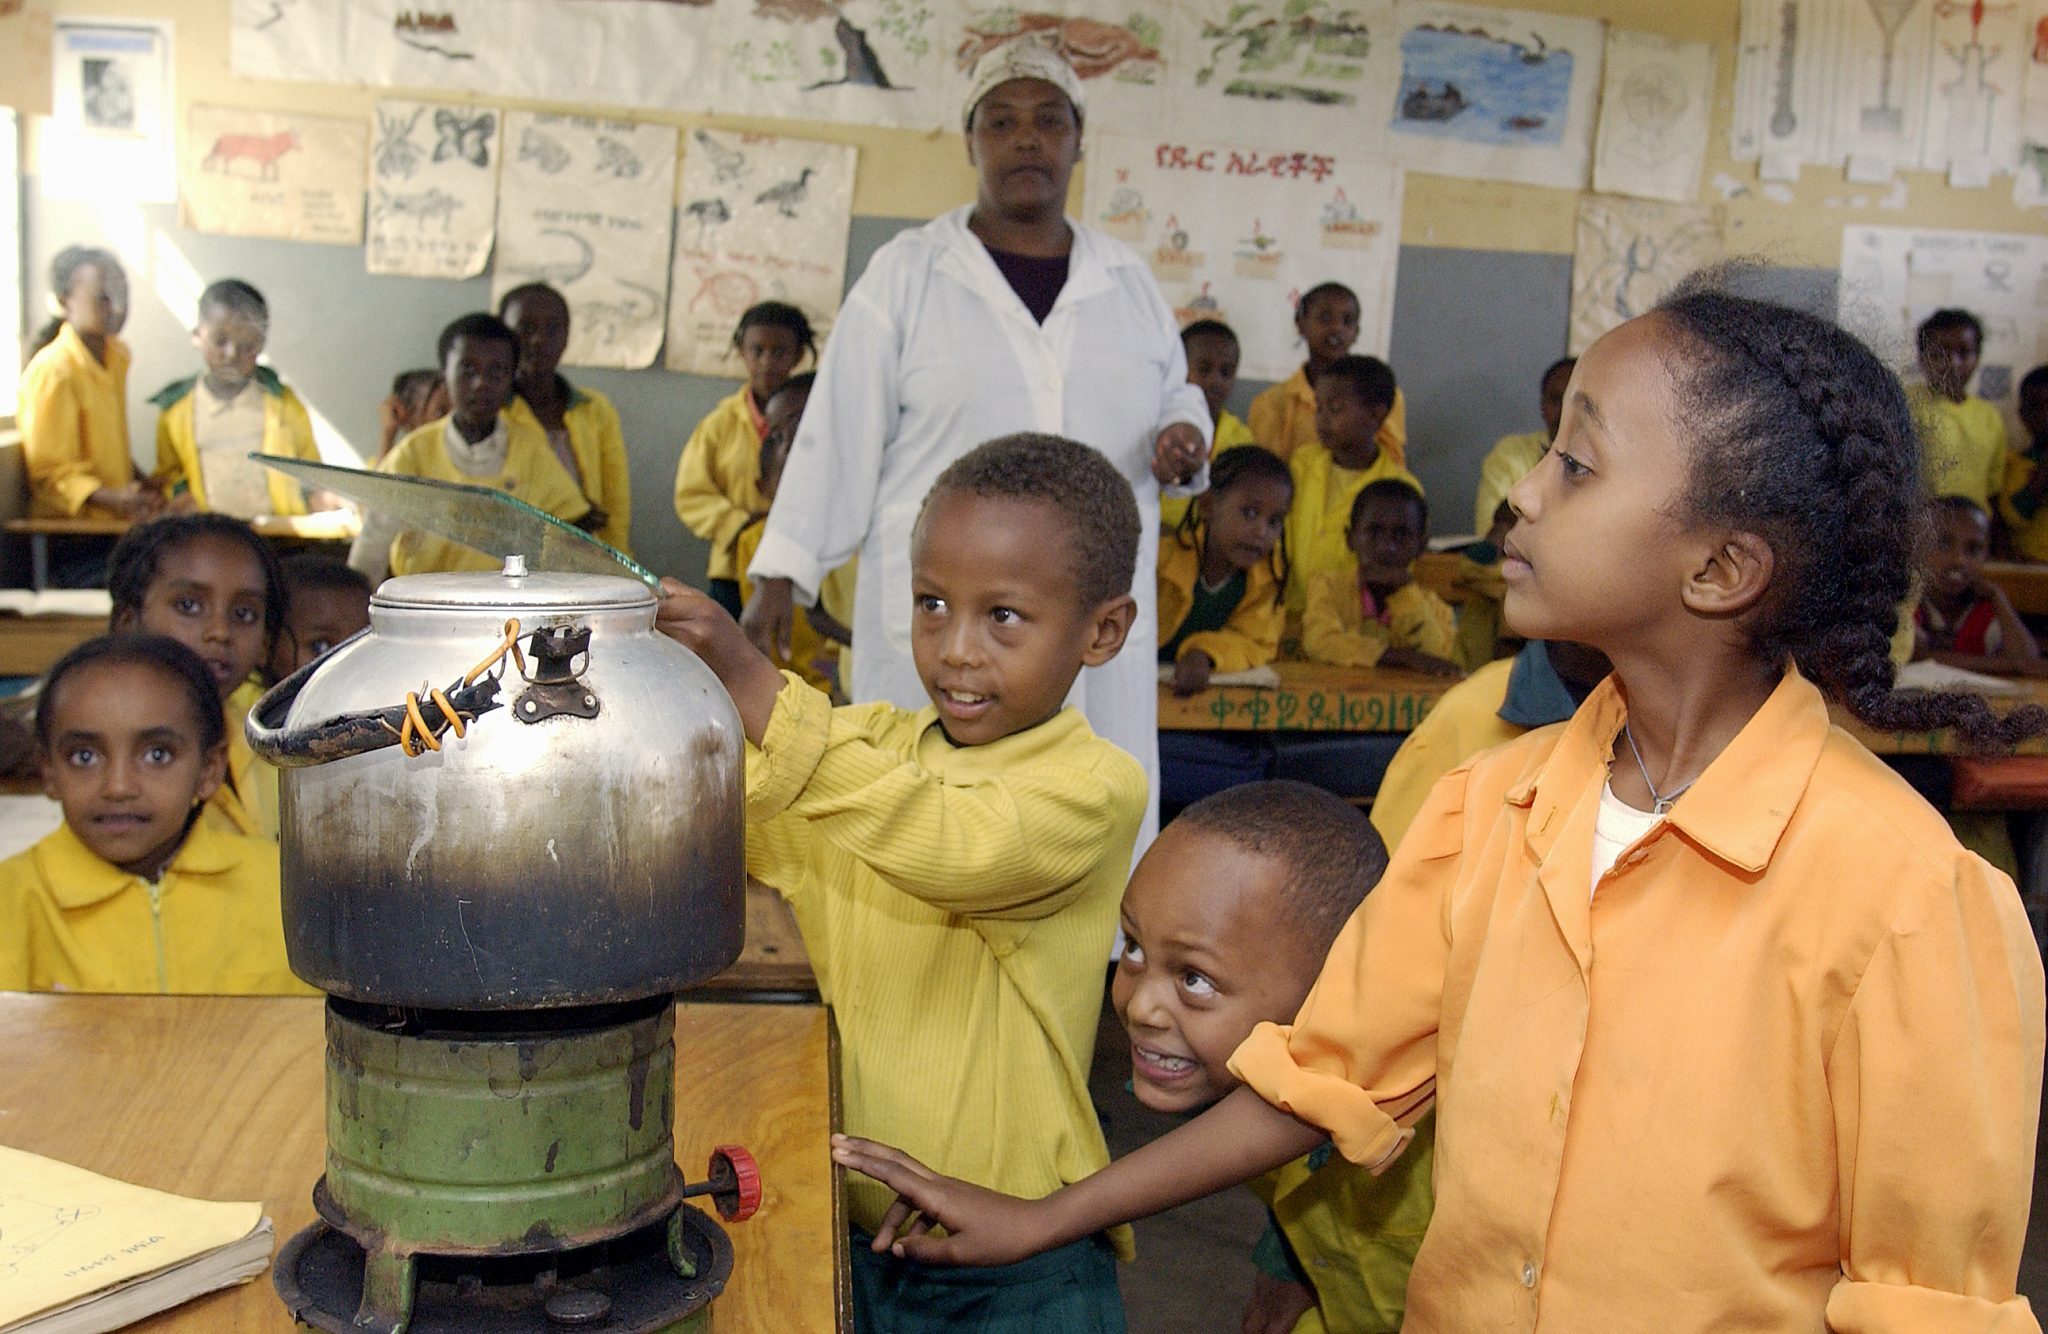 Children conduct a science experiment in a classroom in Harar, Ethiopia. UN Photo/Eskinder Debebe